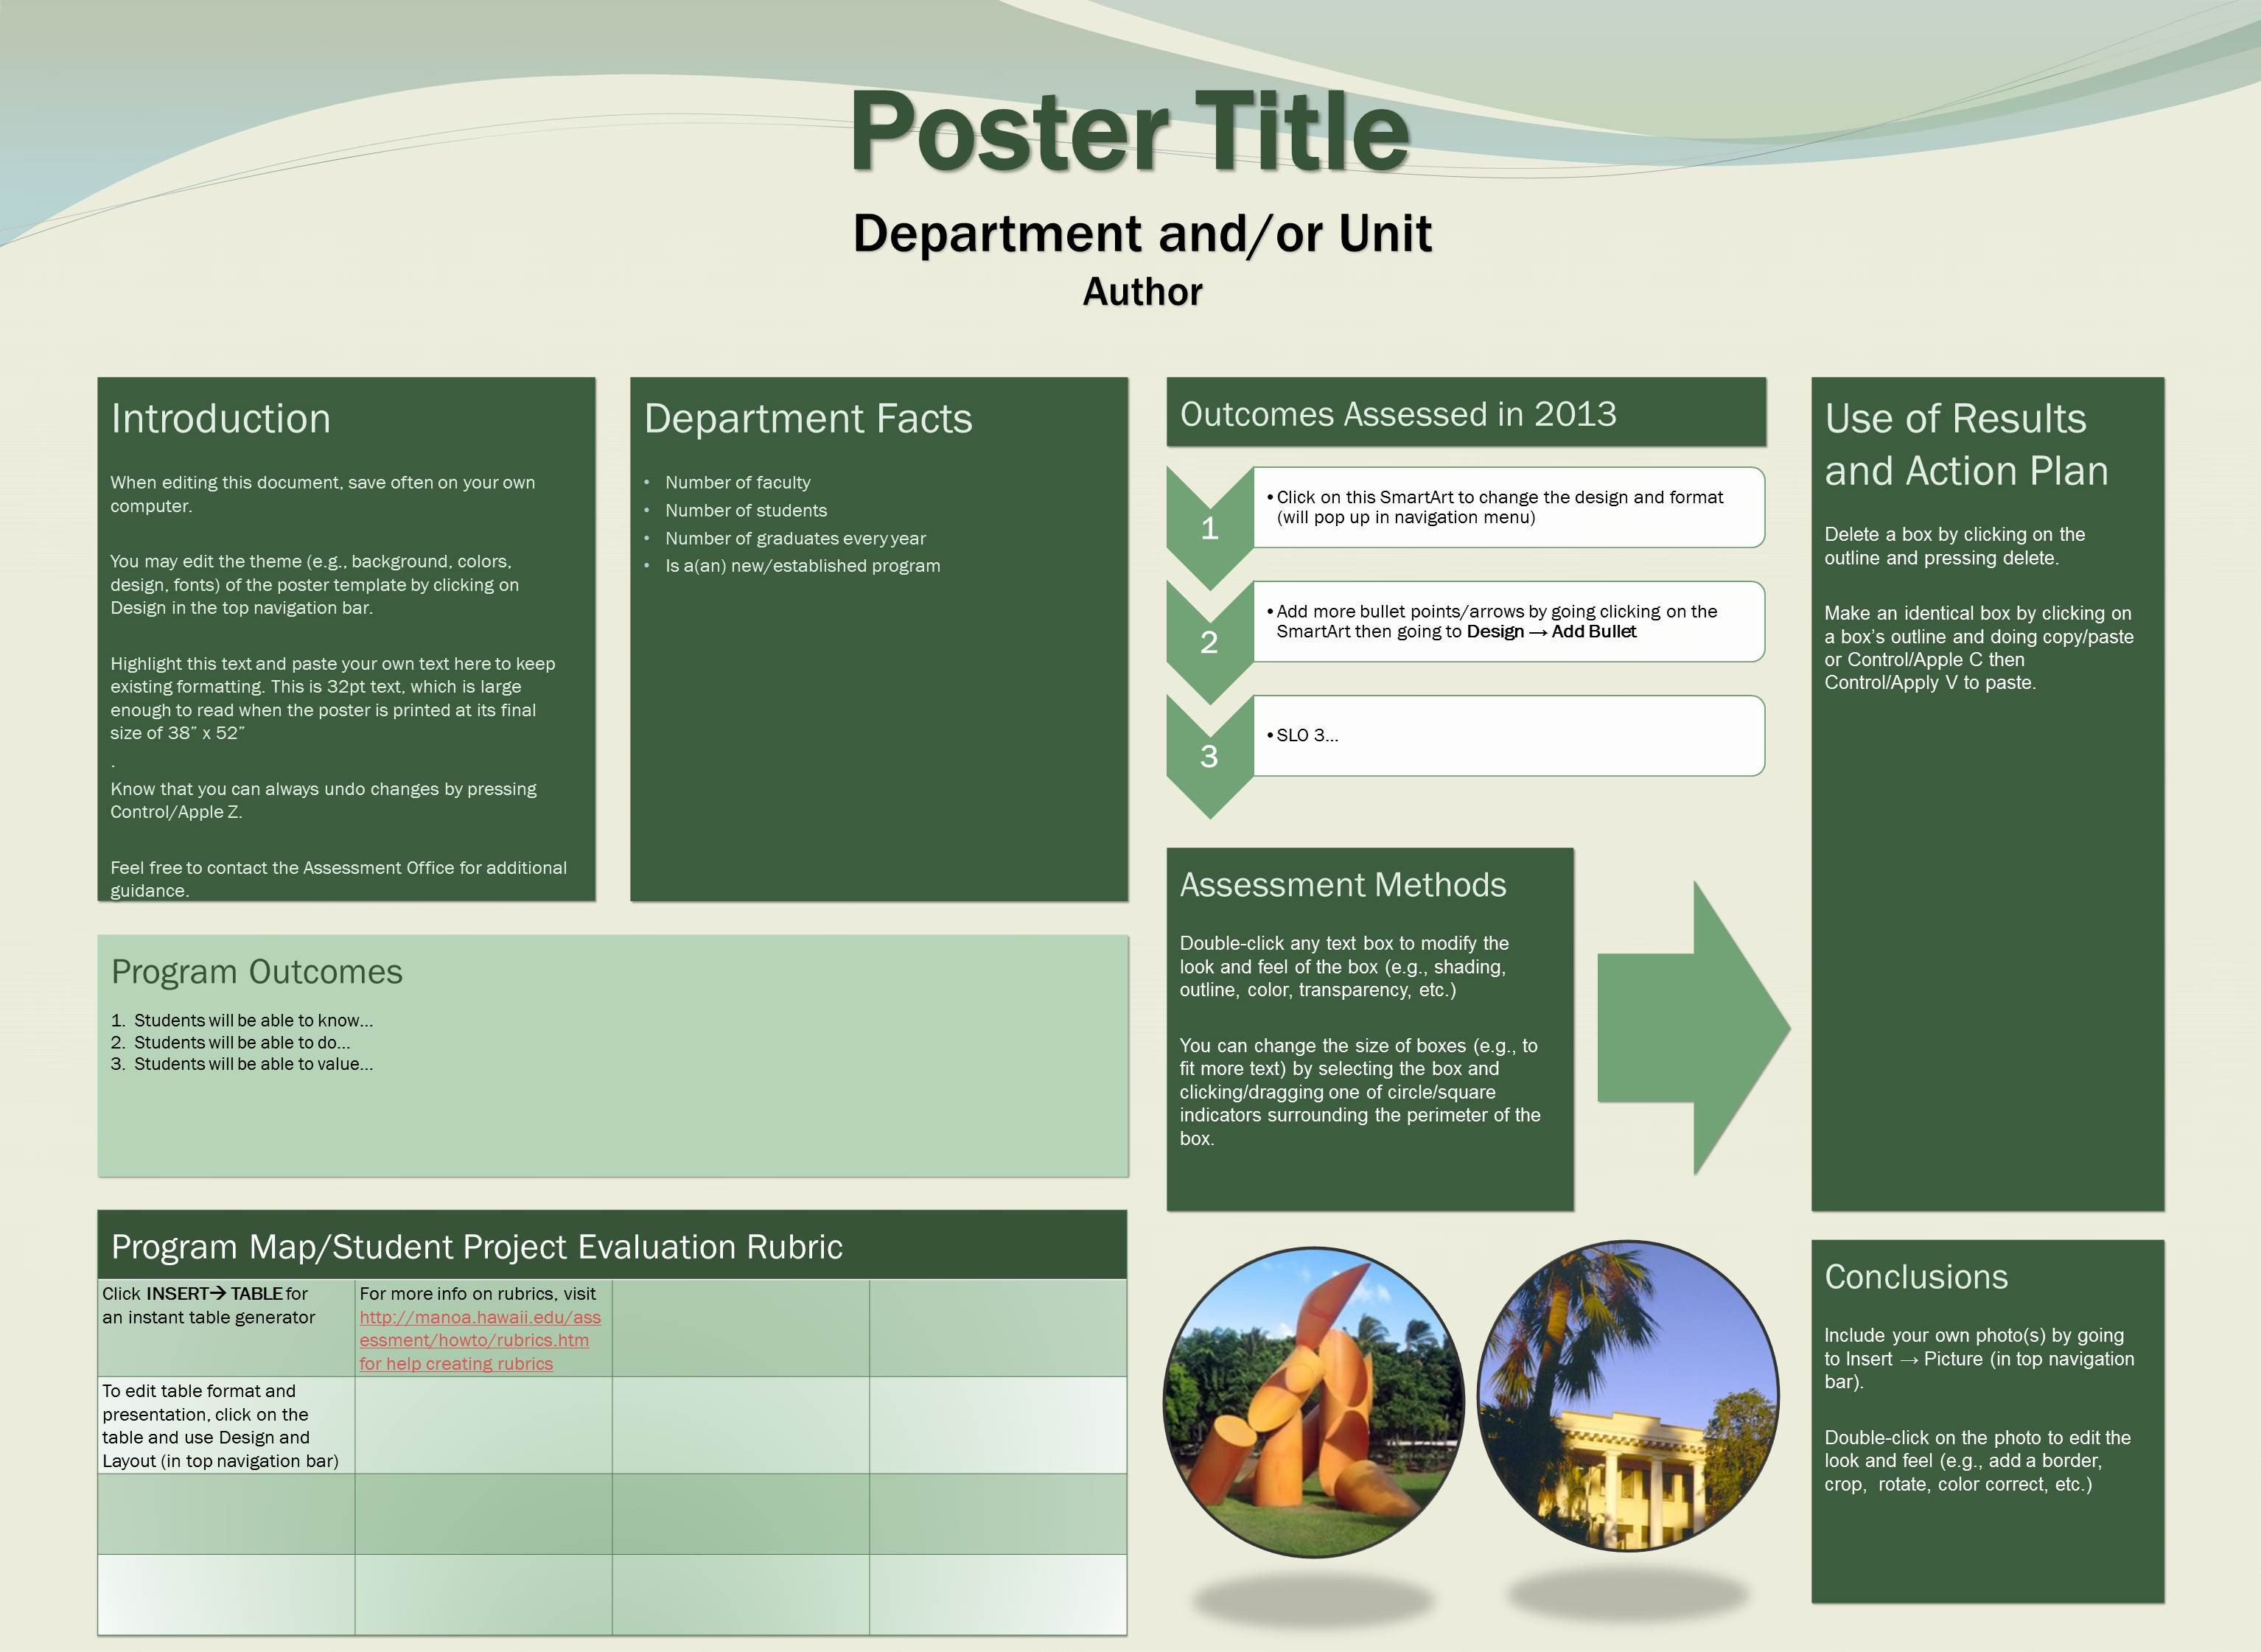 Free Poster Design Templates University Of Hawaii at Manoa assessment Fice